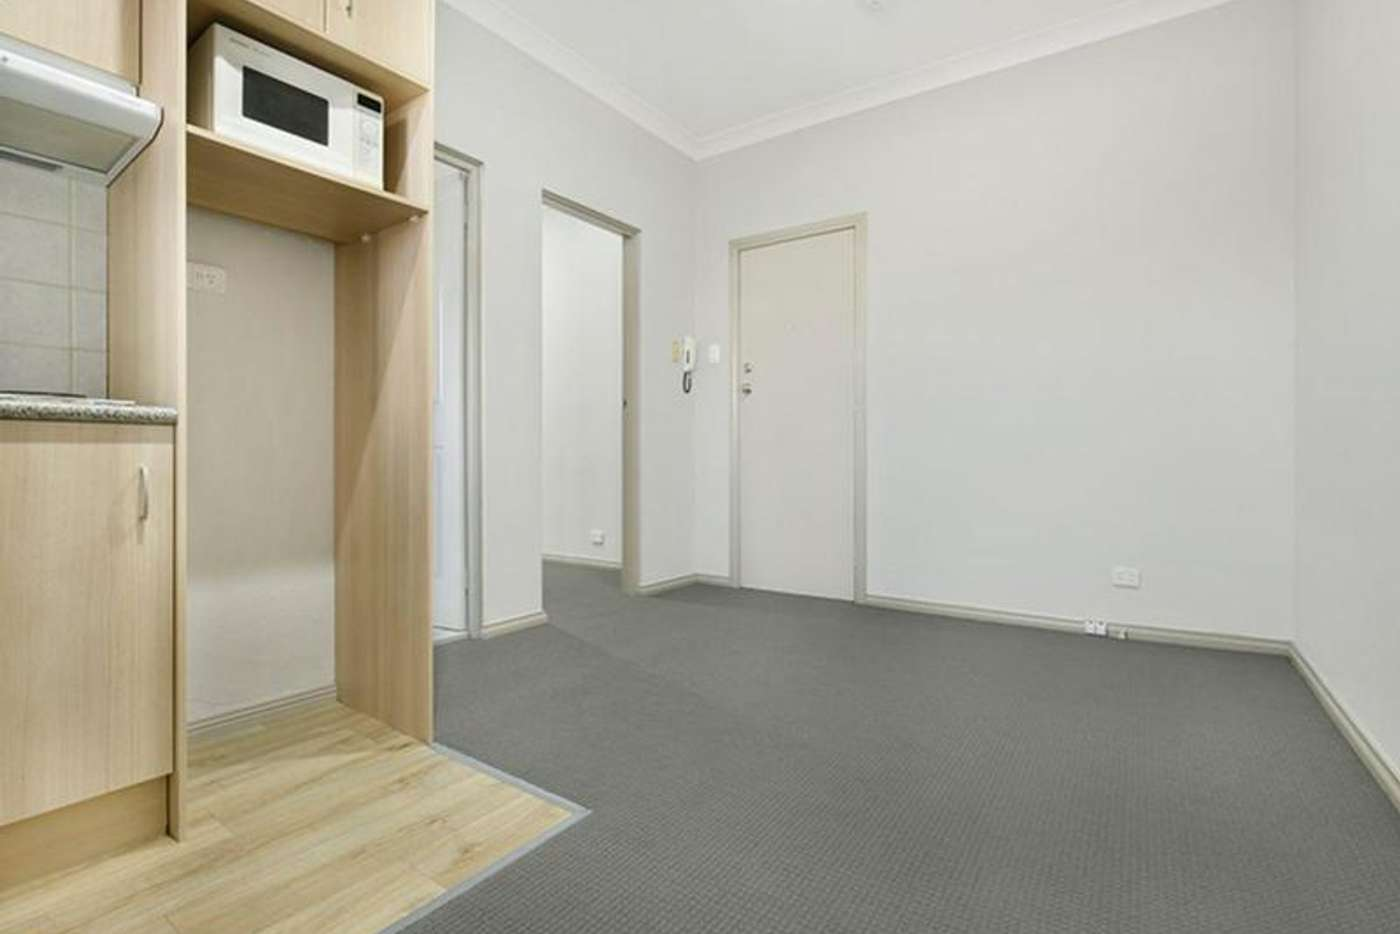 Main view of Homely unit listing, 6/143 Kembla Street, Wollongong NSW 2500